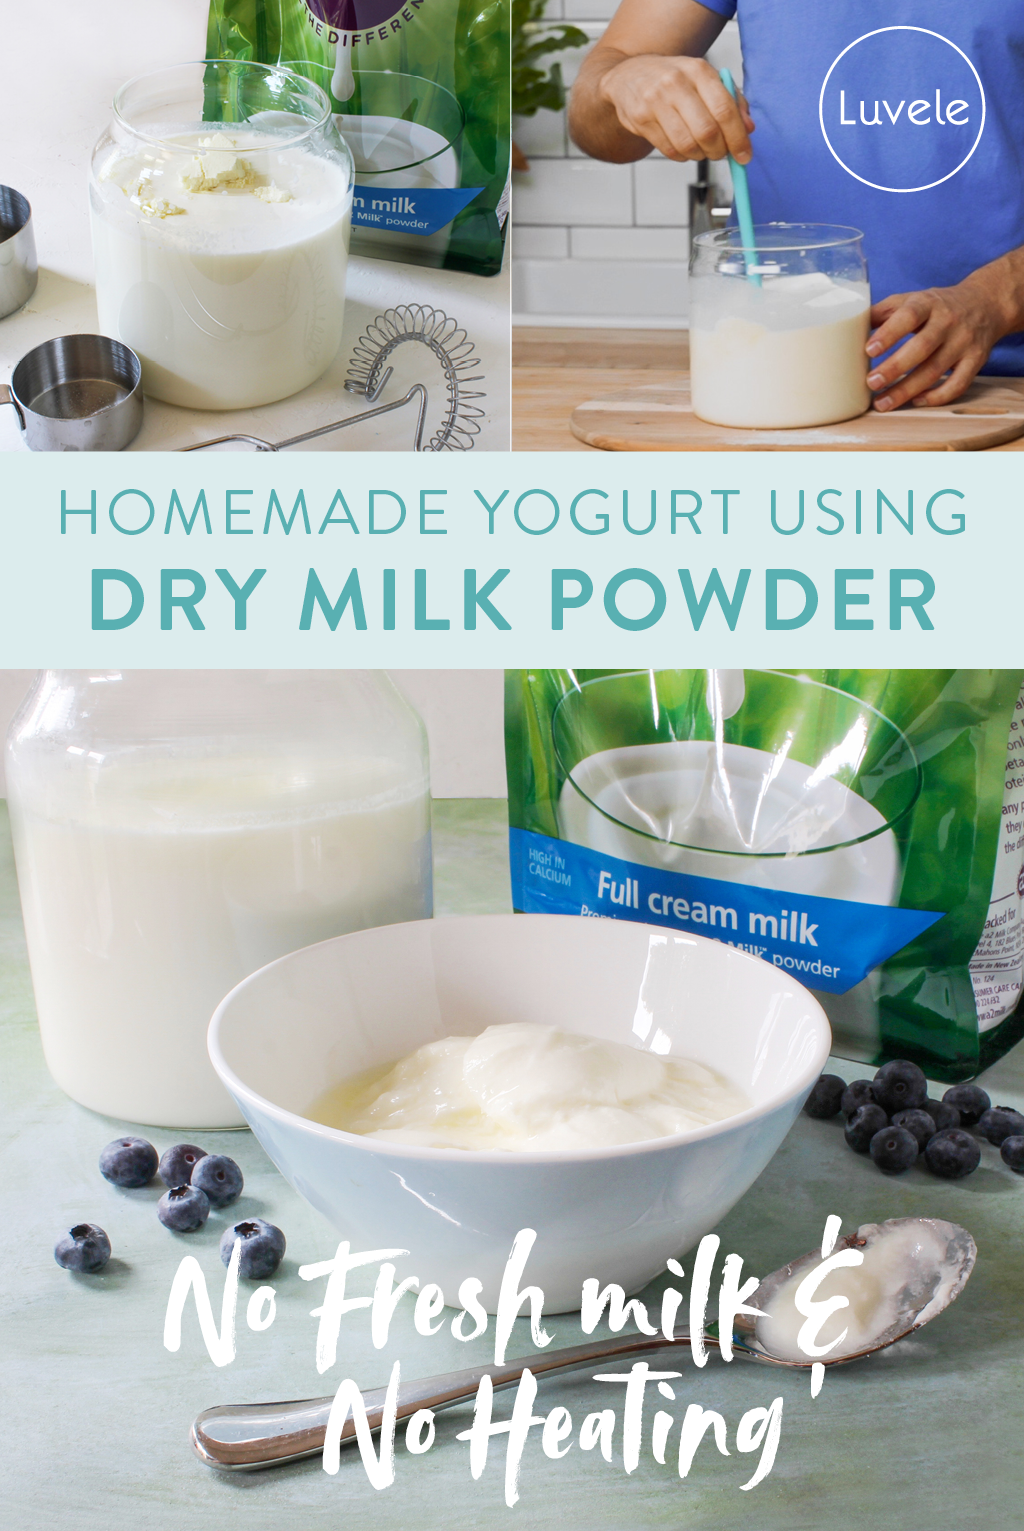 Dry milk powder homemade yogurt